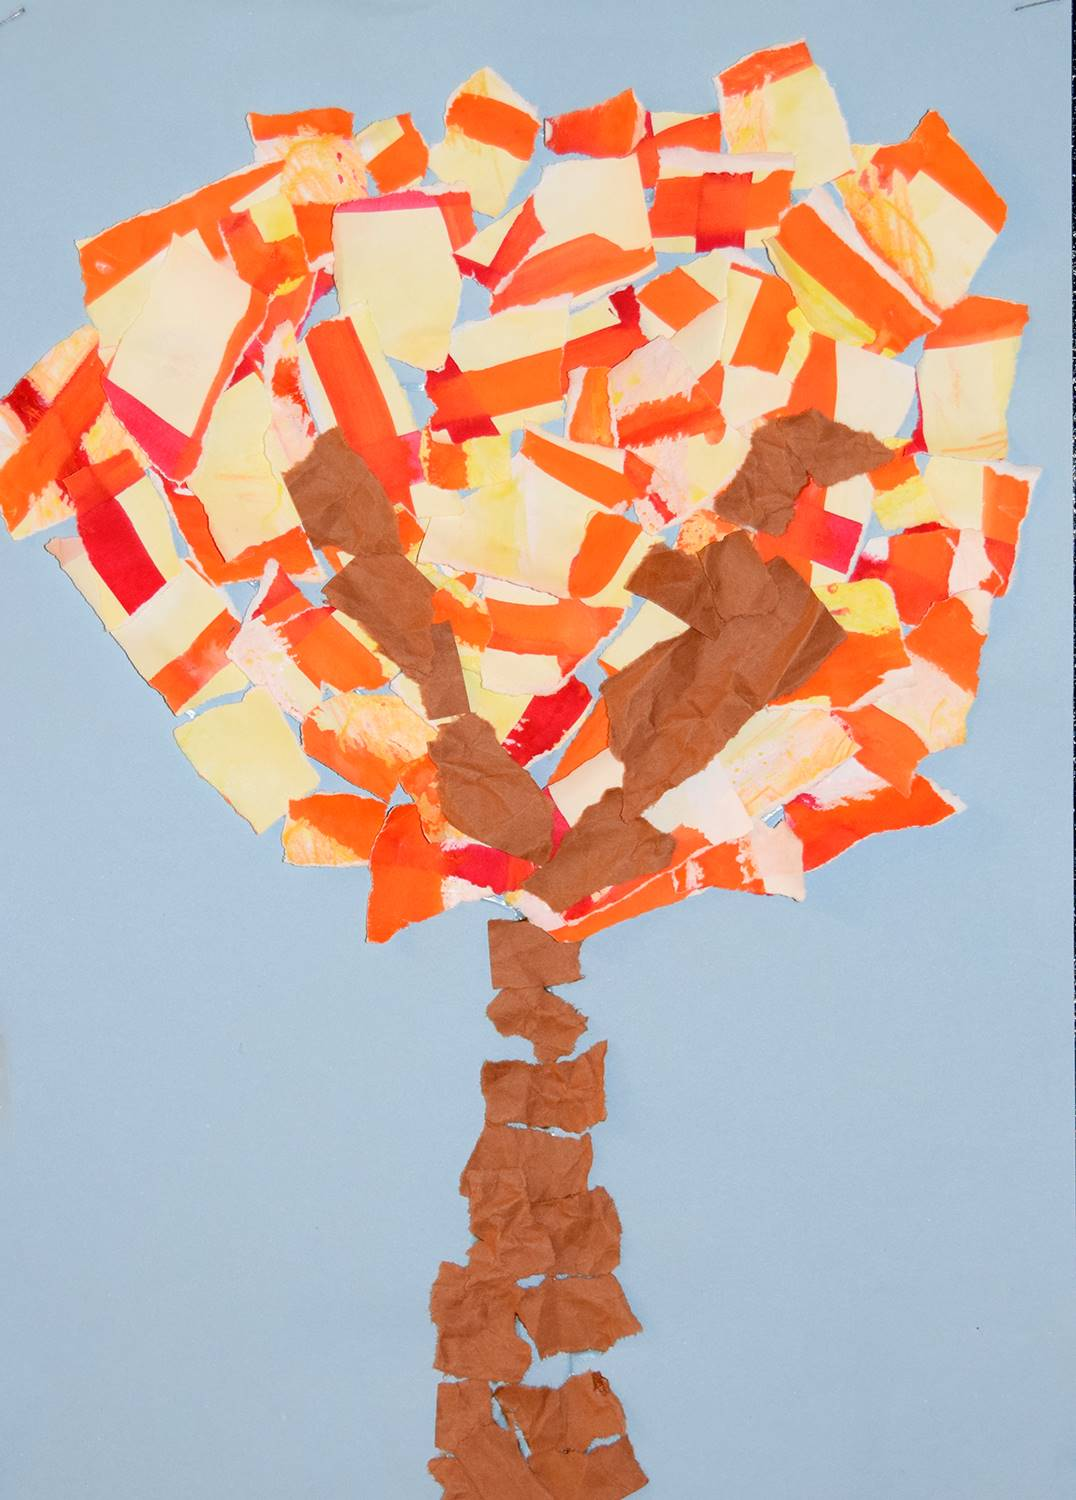 An autumn tree made out of torn construction paper on a blue background was created by Asher, an Afr